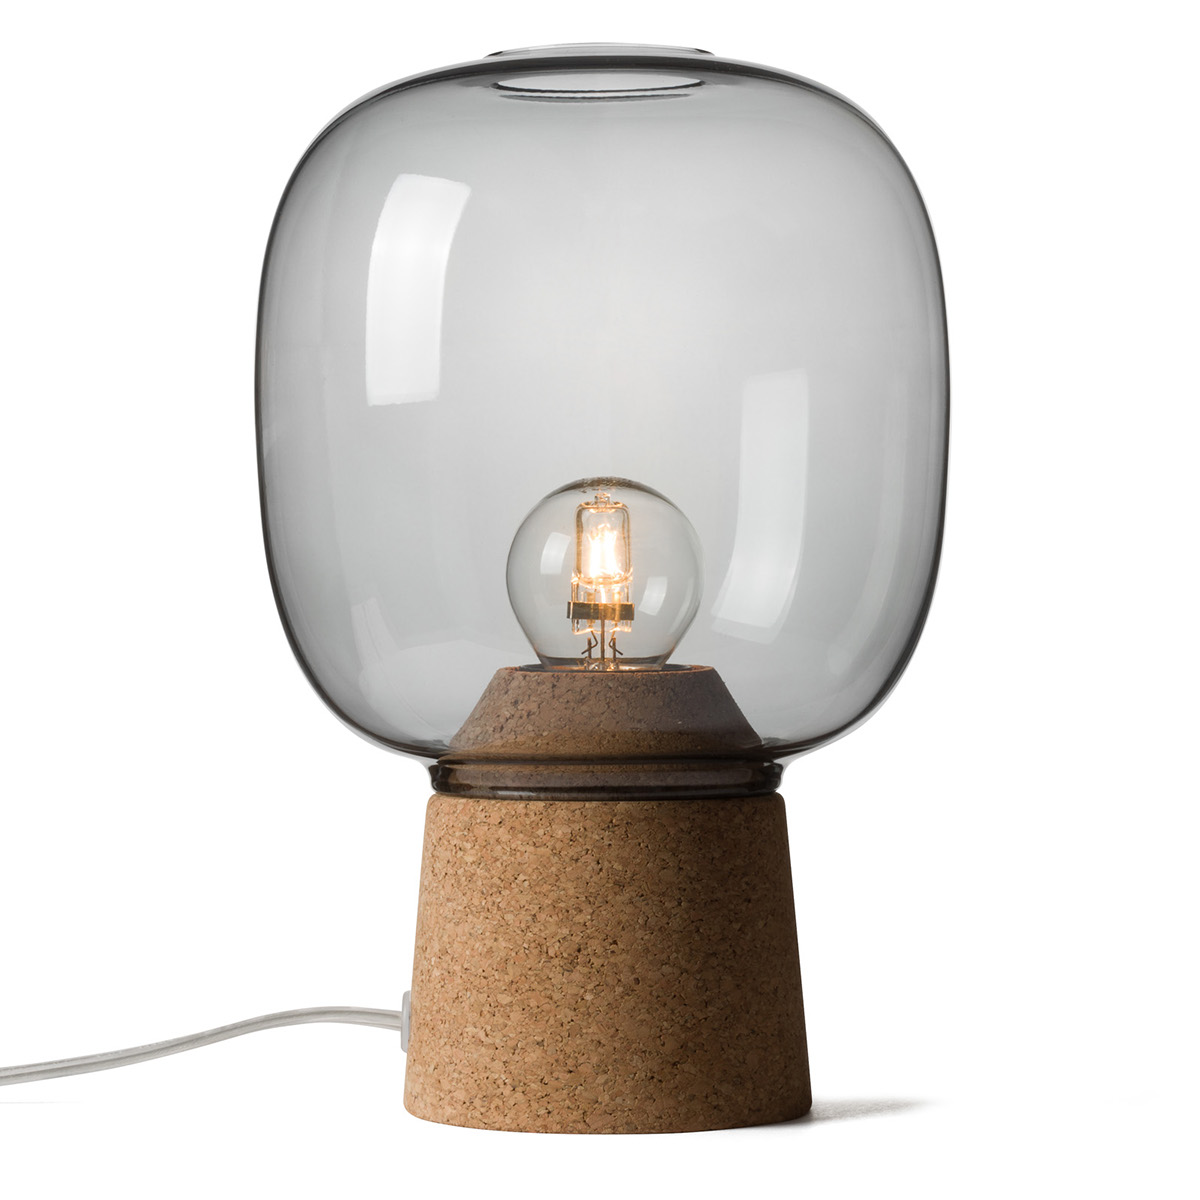 Picia-table-lamp-hisheji (11)